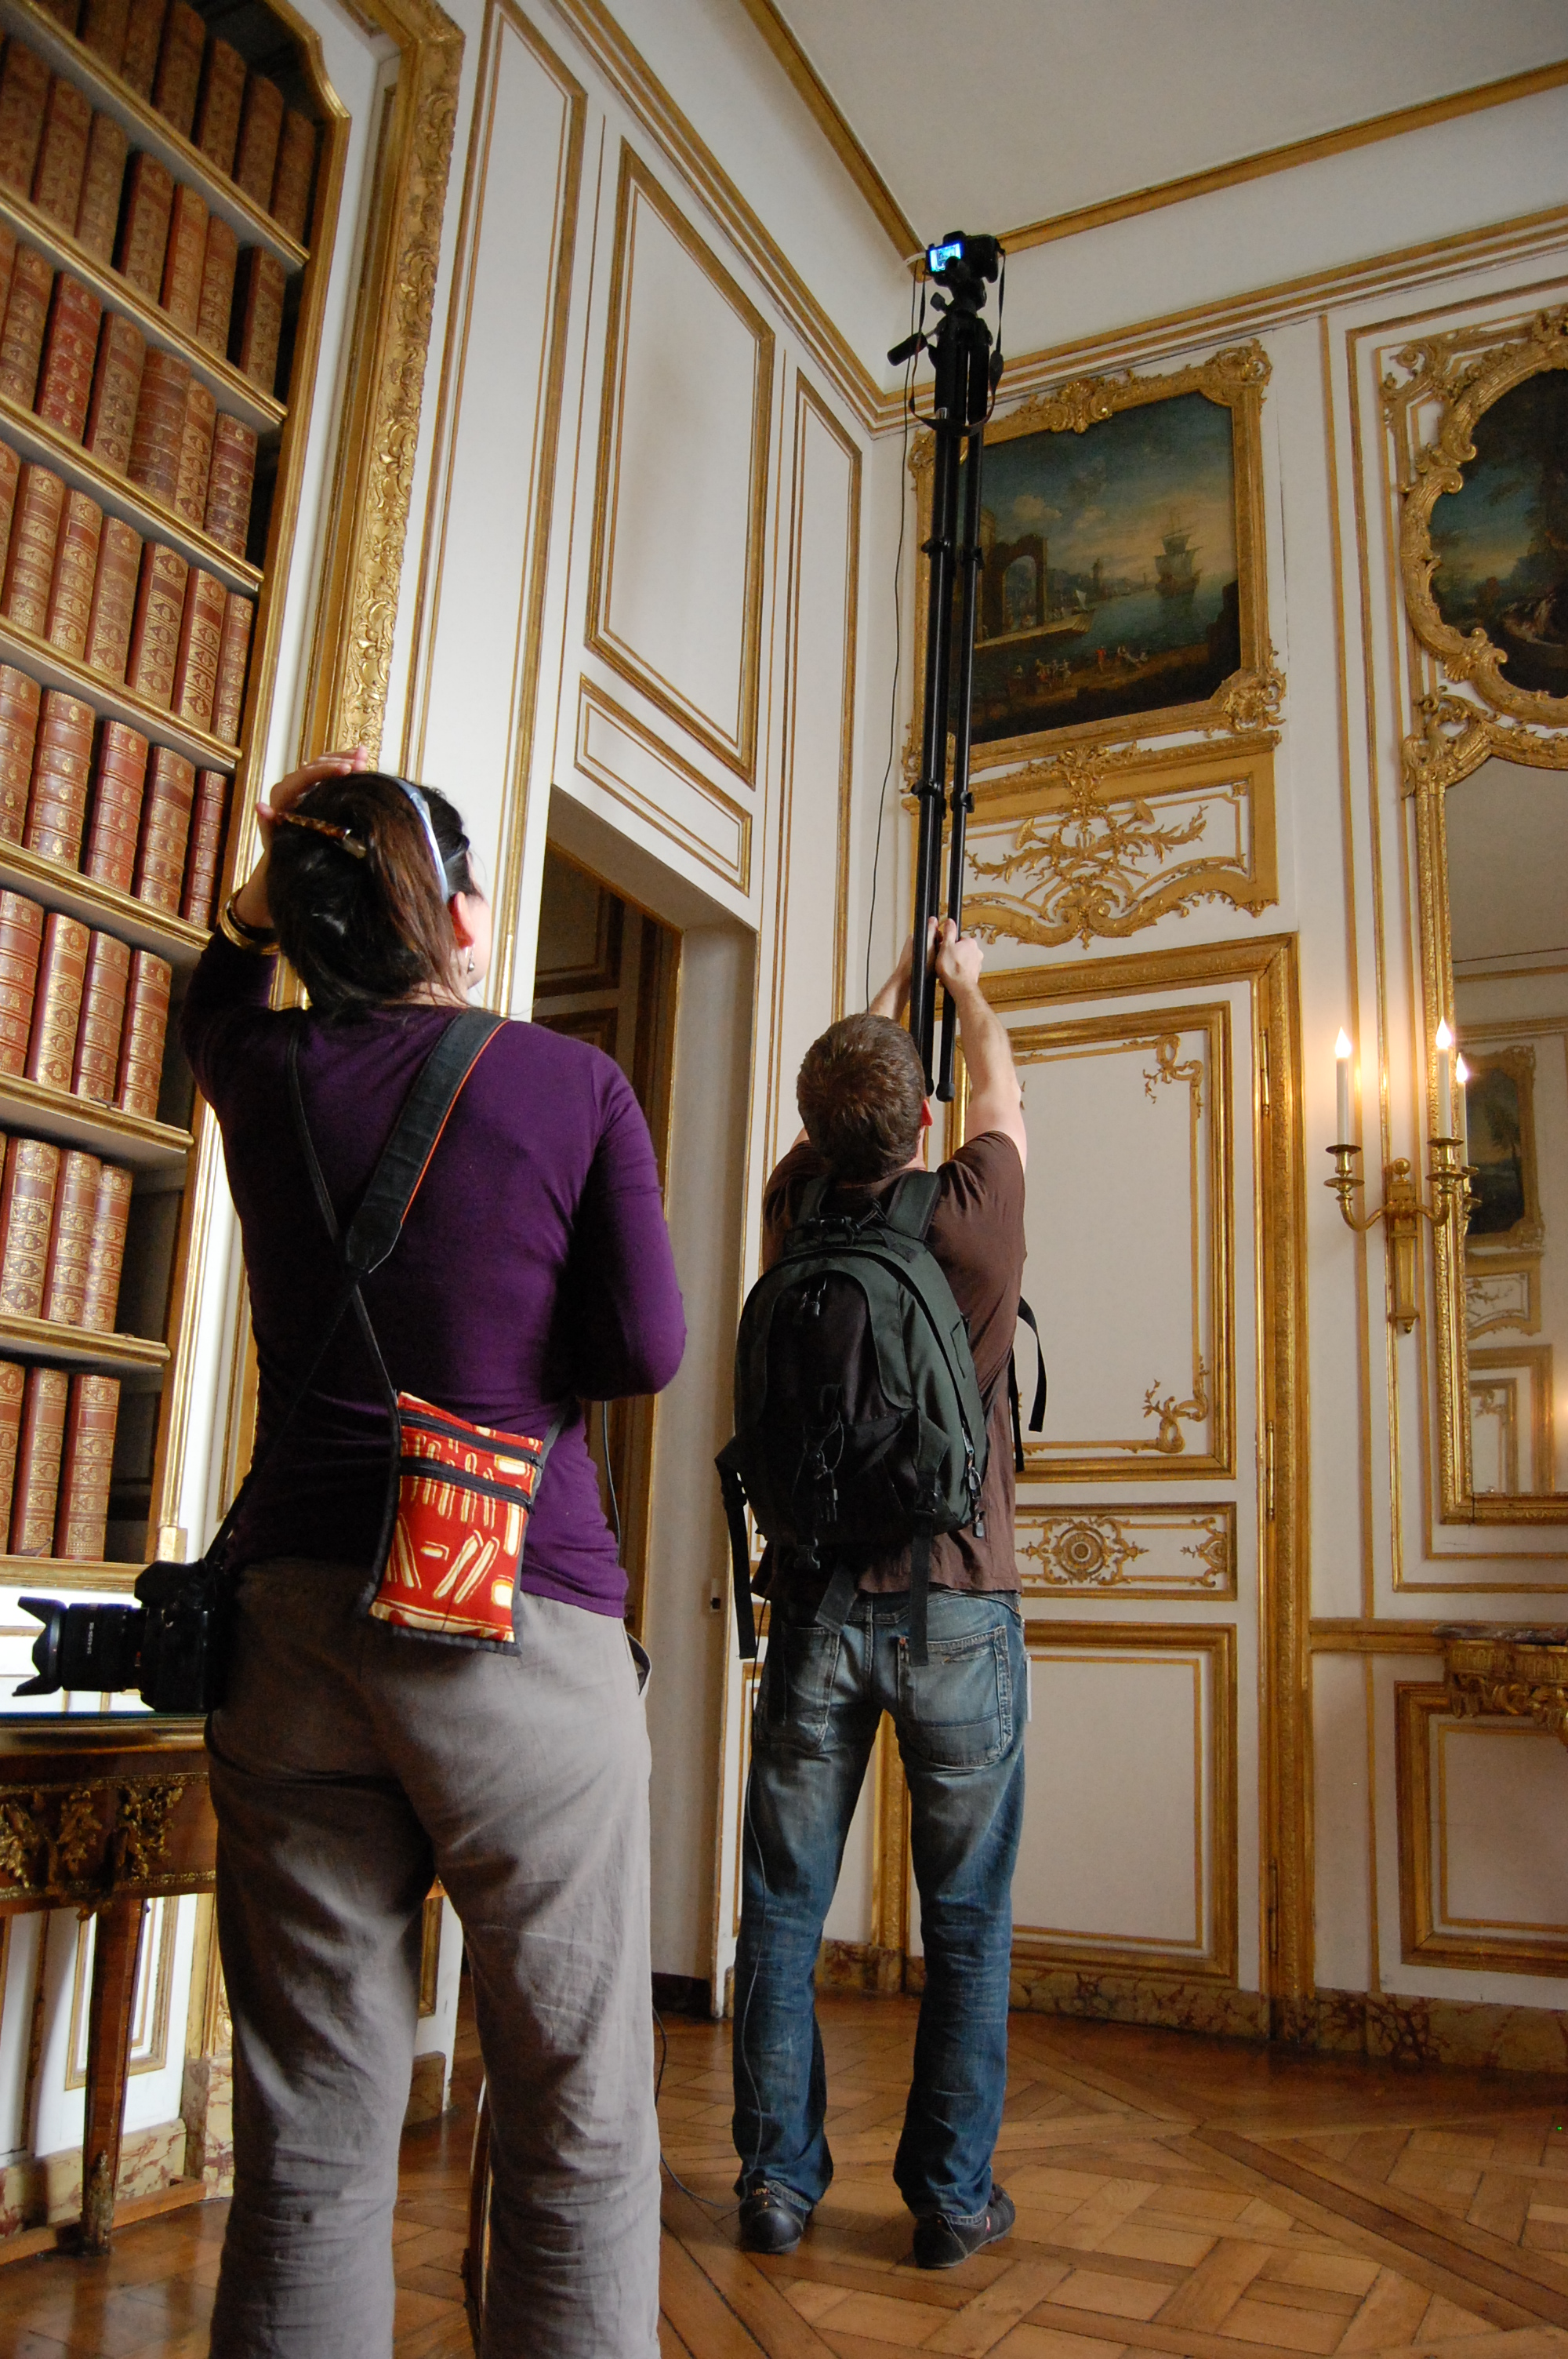 Two Wikimedians, with the aid of a pole, taking a photo of a painting installed several meters off the ground at the Palace of Versailles